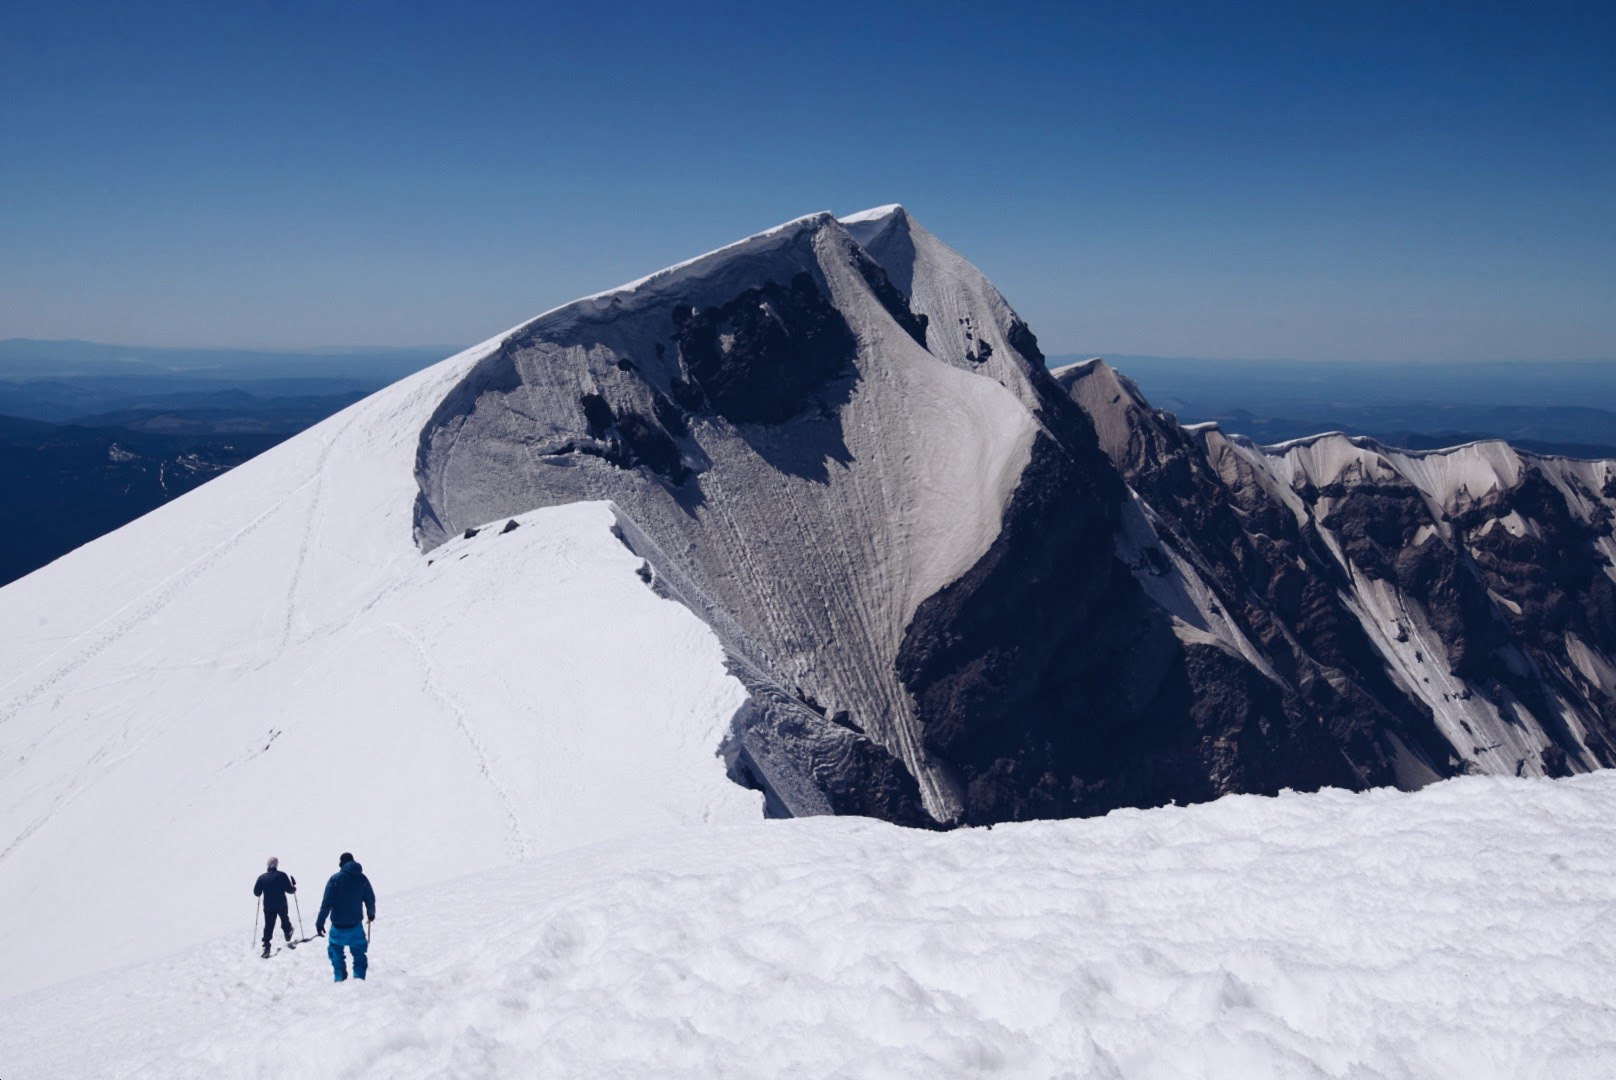 snowboarders at the summit of mt st helens in washington state Cascadia